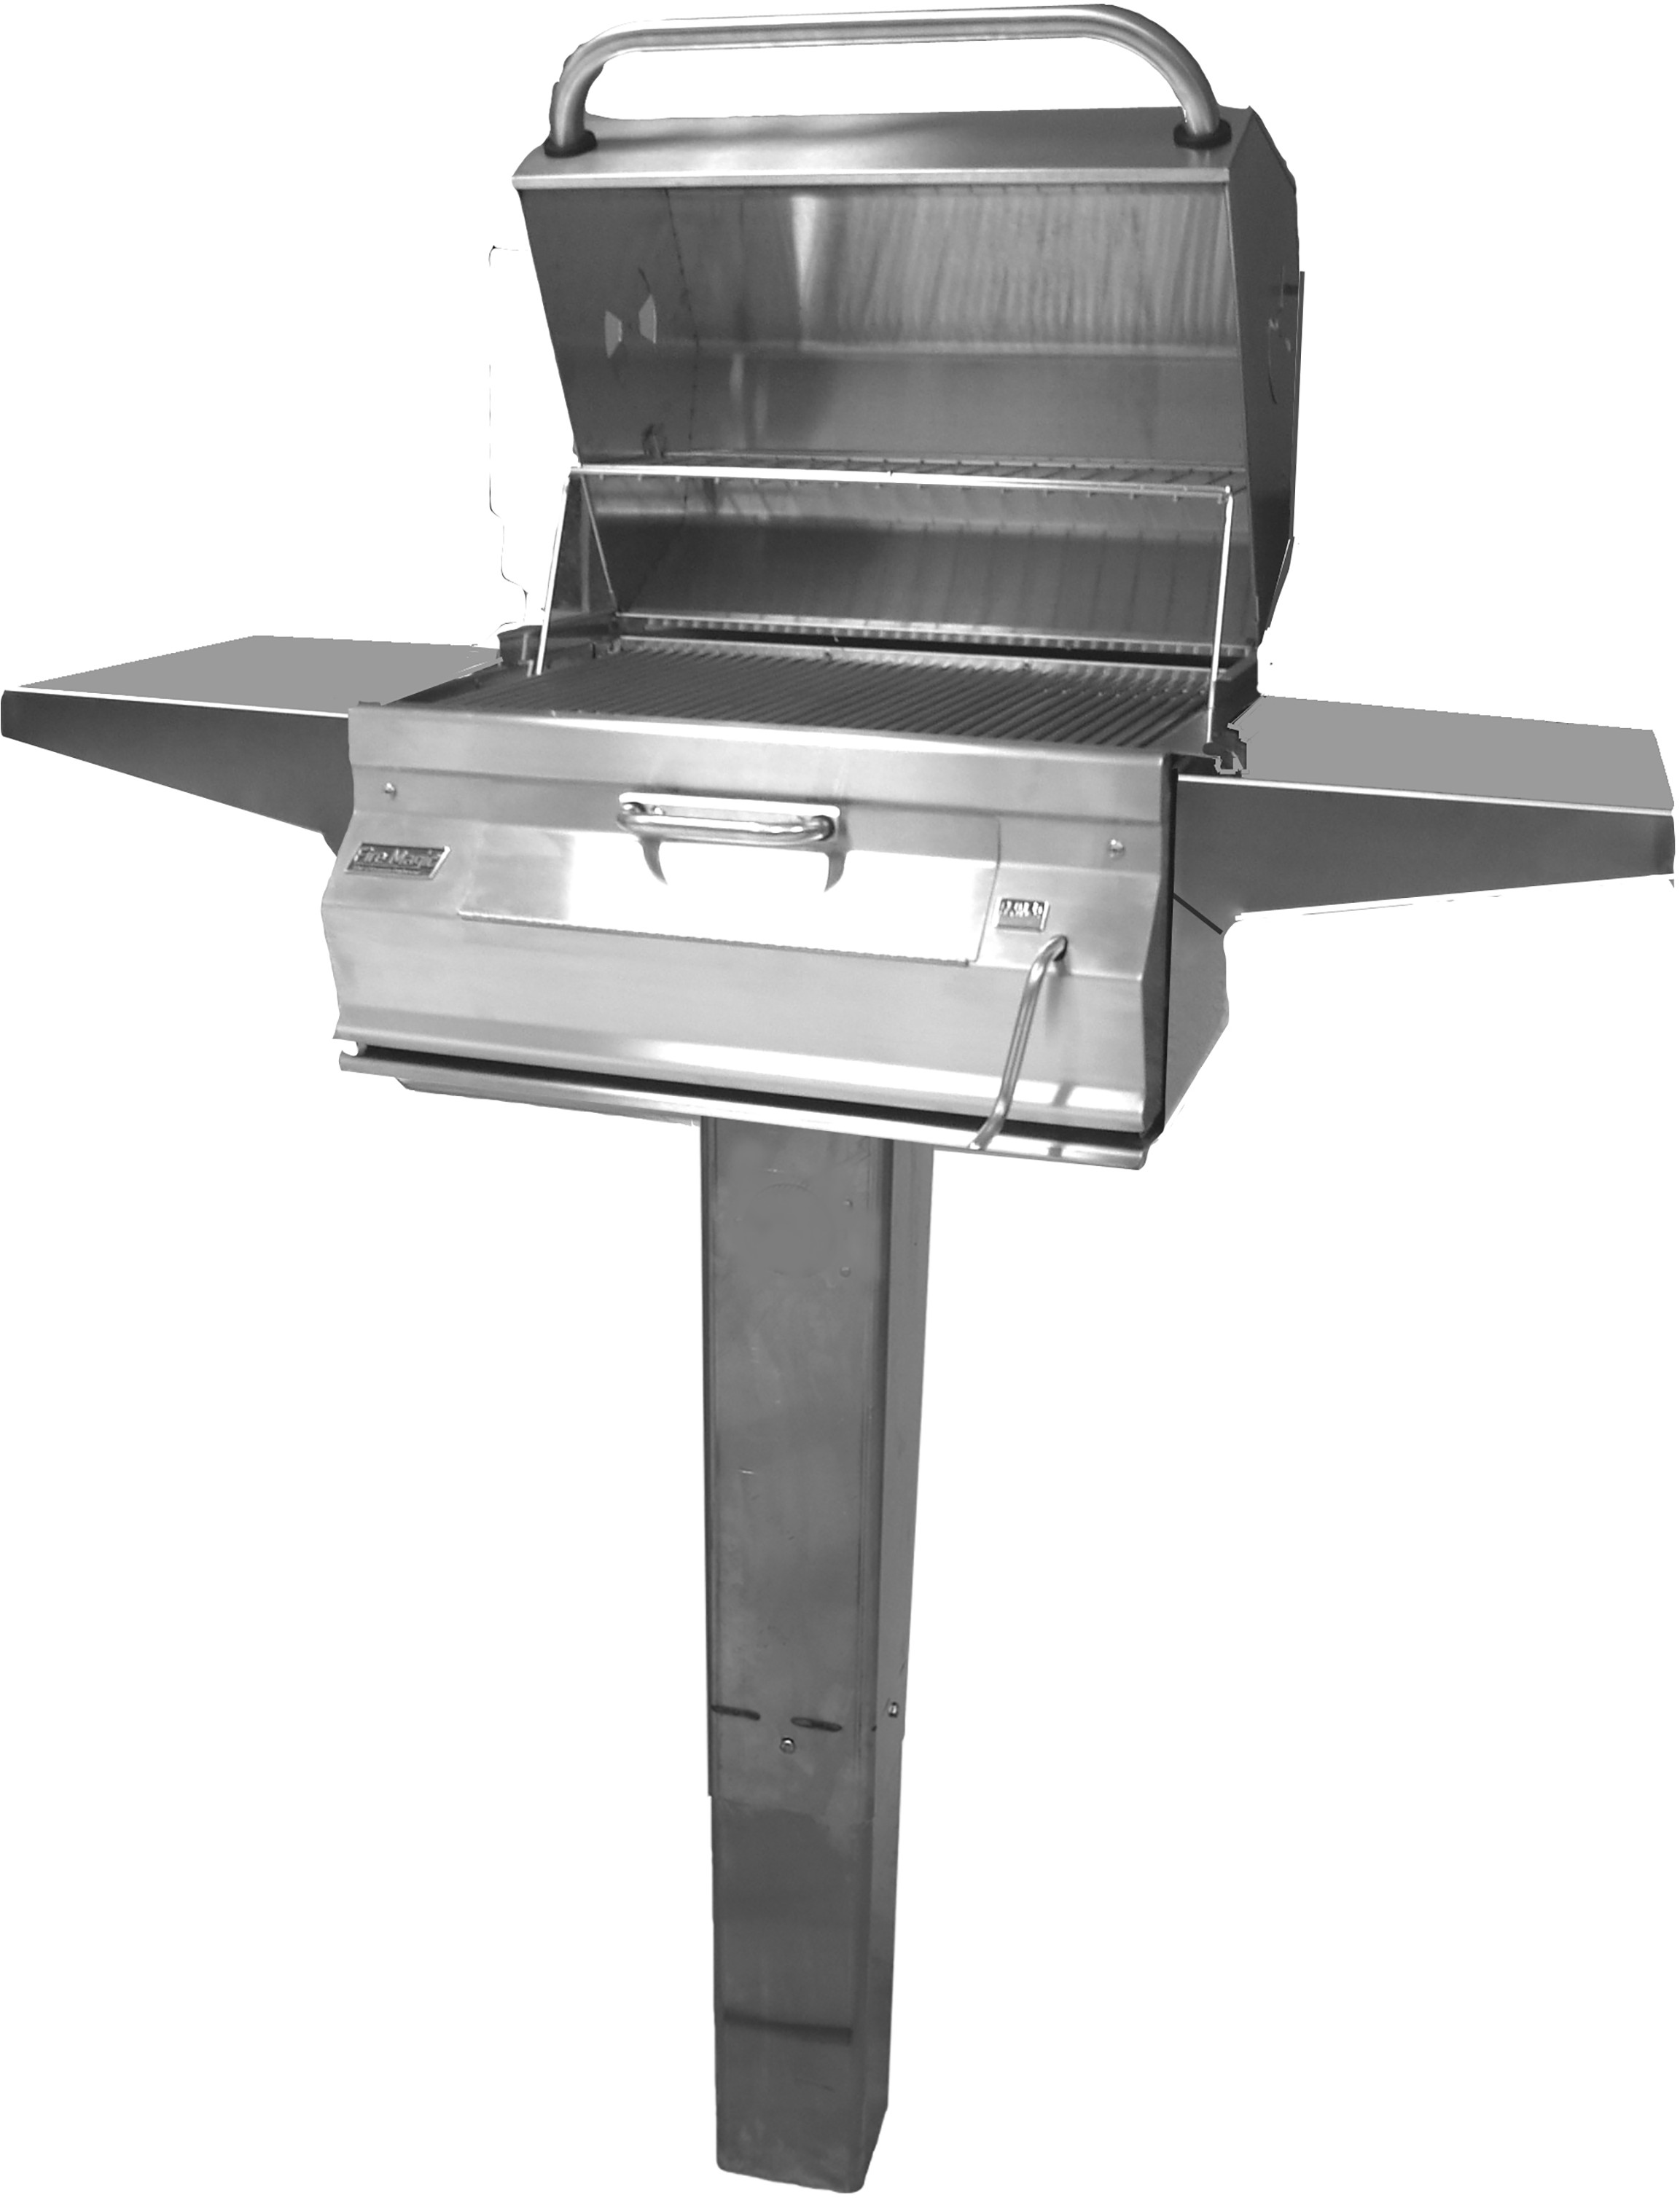 Fire Magic Charcoal Legacy Collection 22sc01cg6 56 Inch Grill